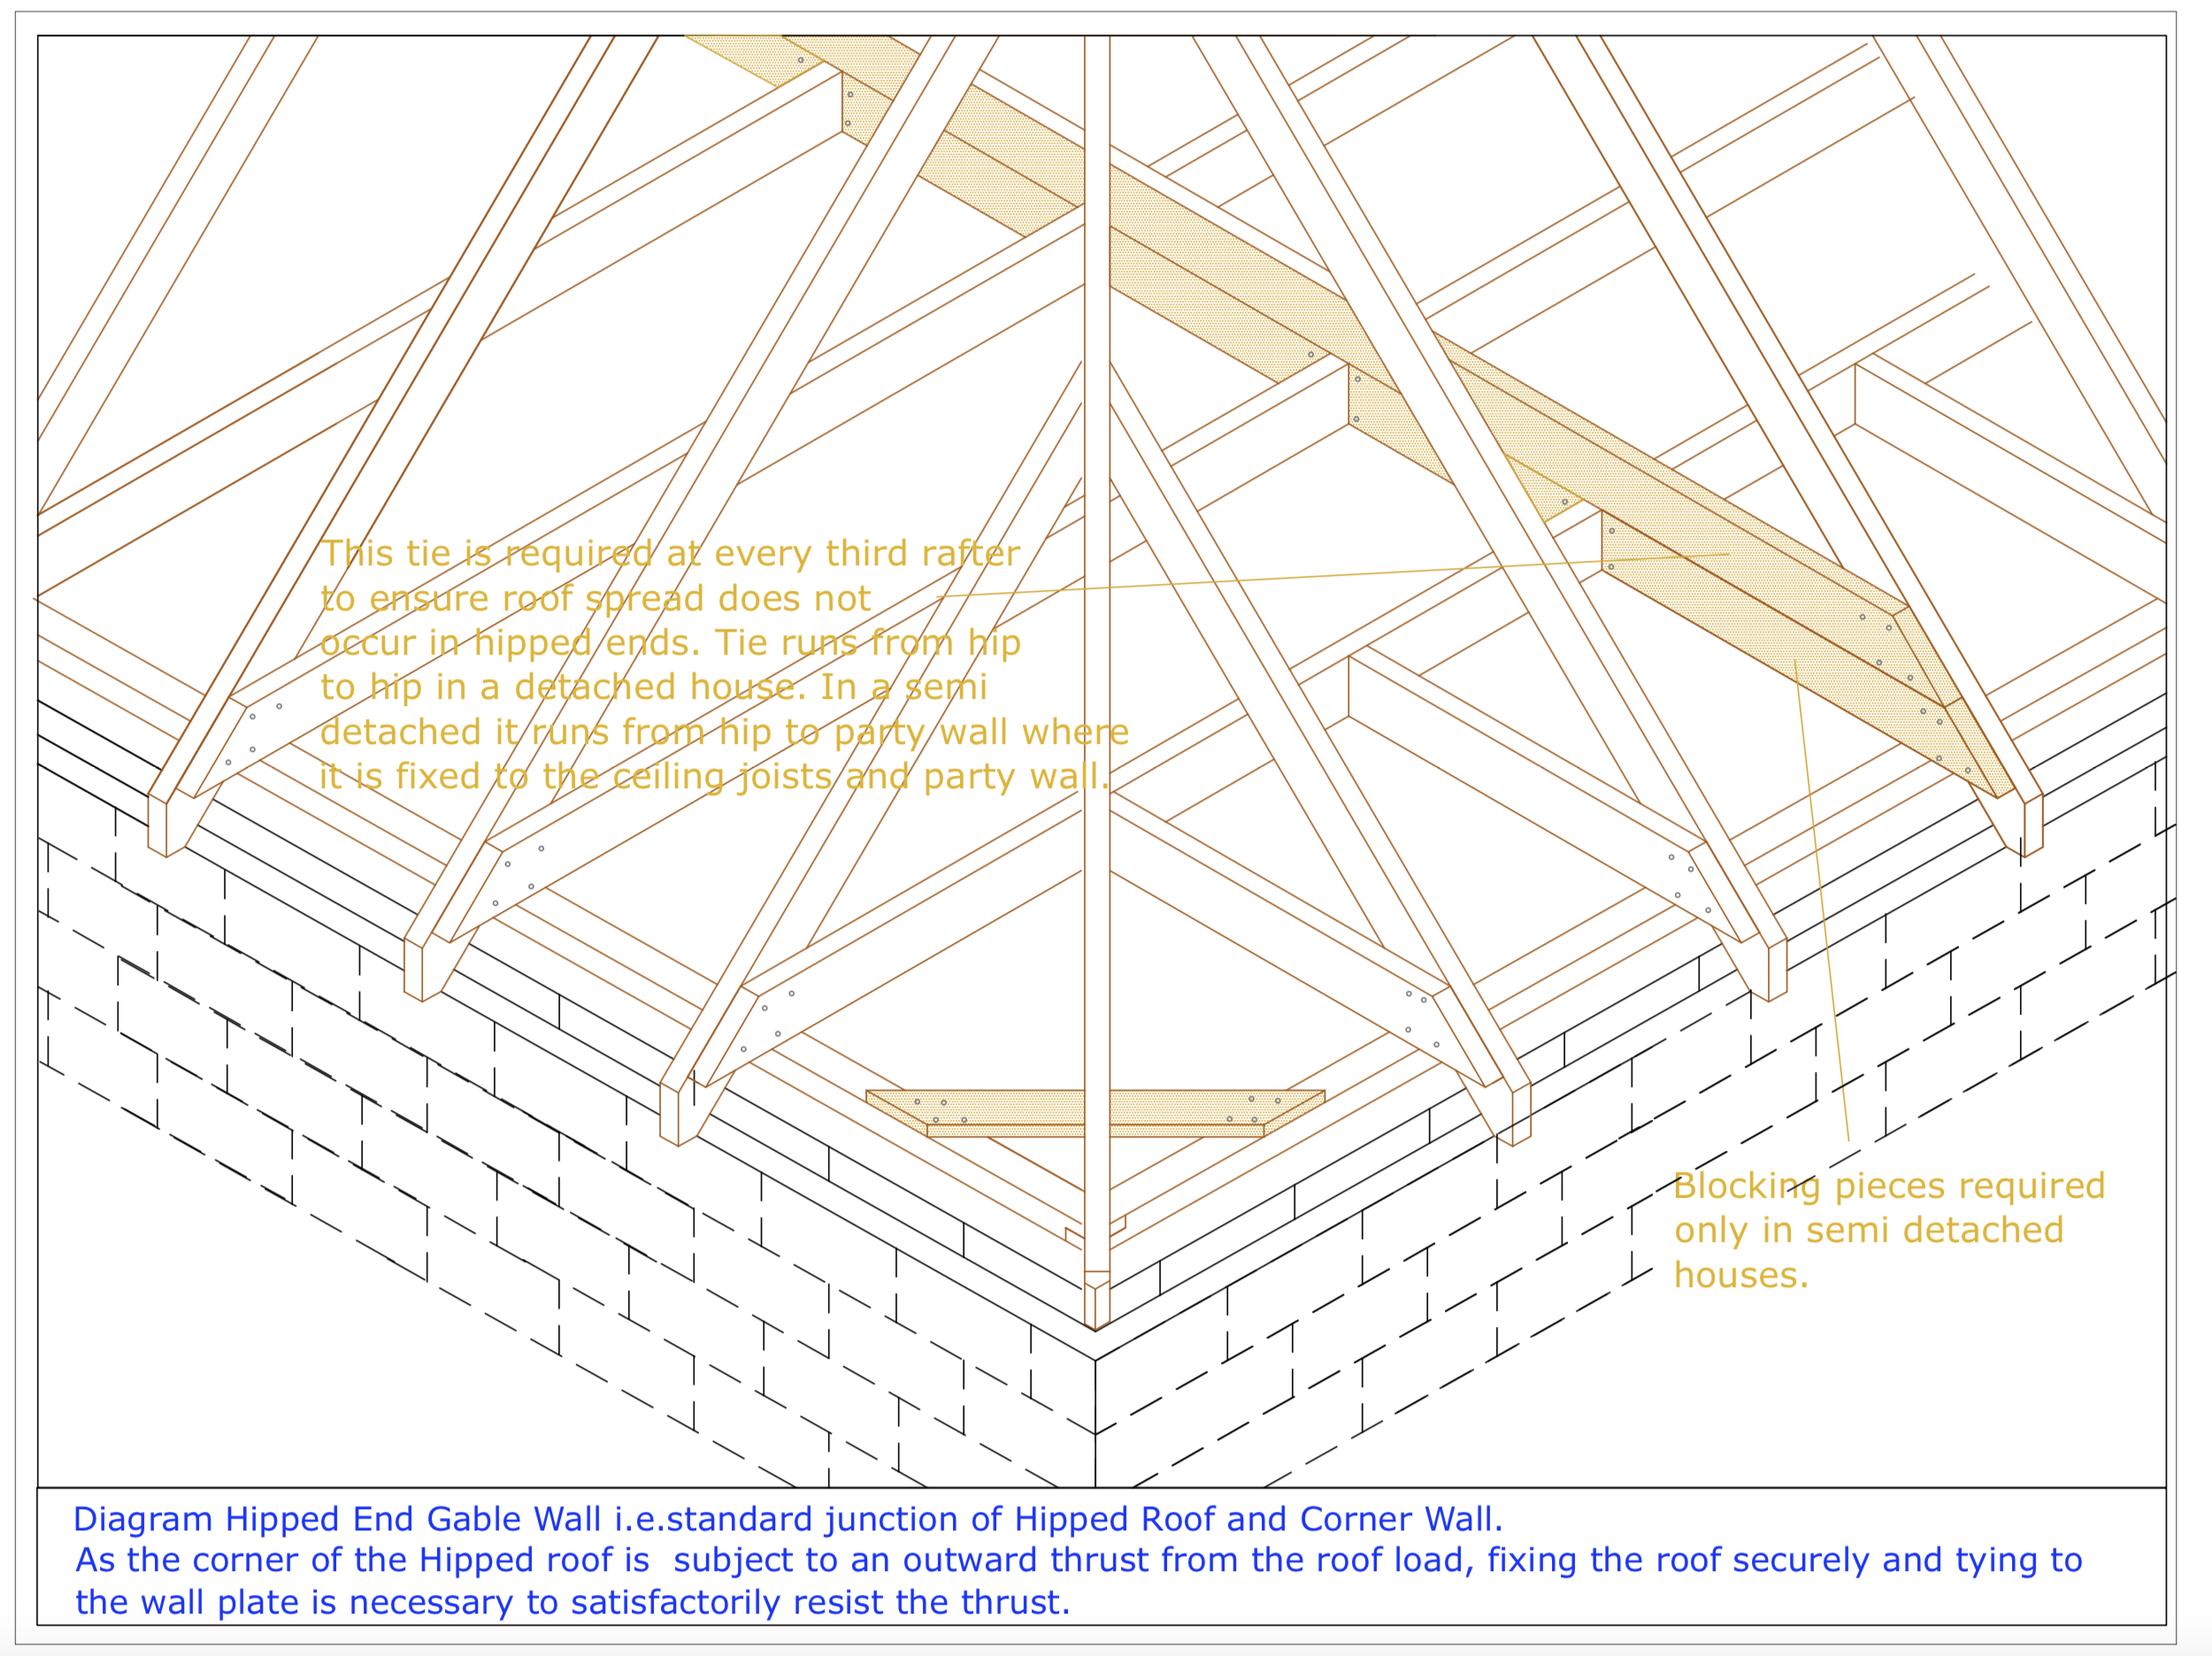 Diagram D37 - Hipped end corner gable wall